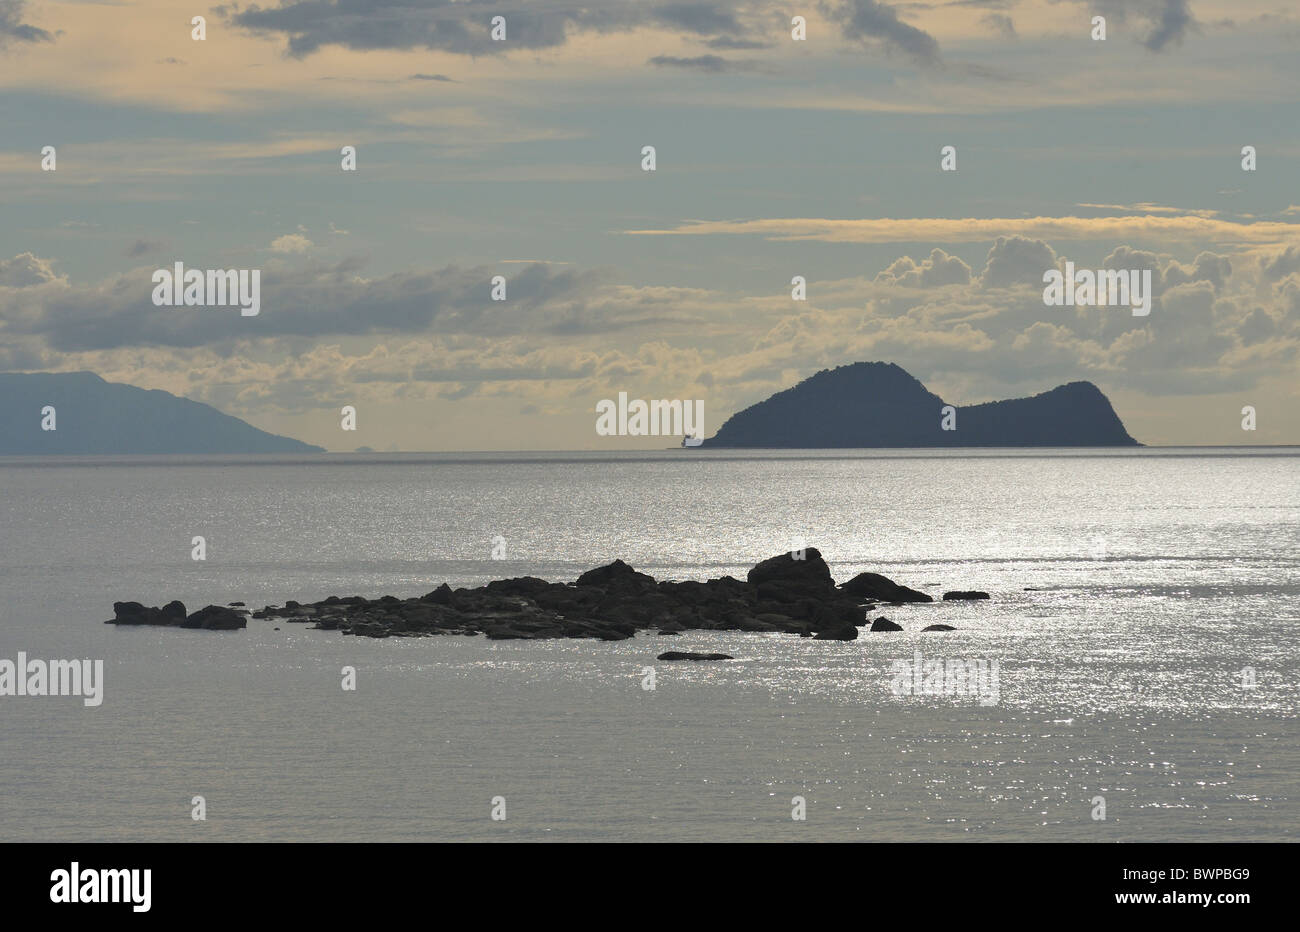 Satang Island in silhouette on the South China Sea, Sarawak, Malaysia, Asia - Stock Image